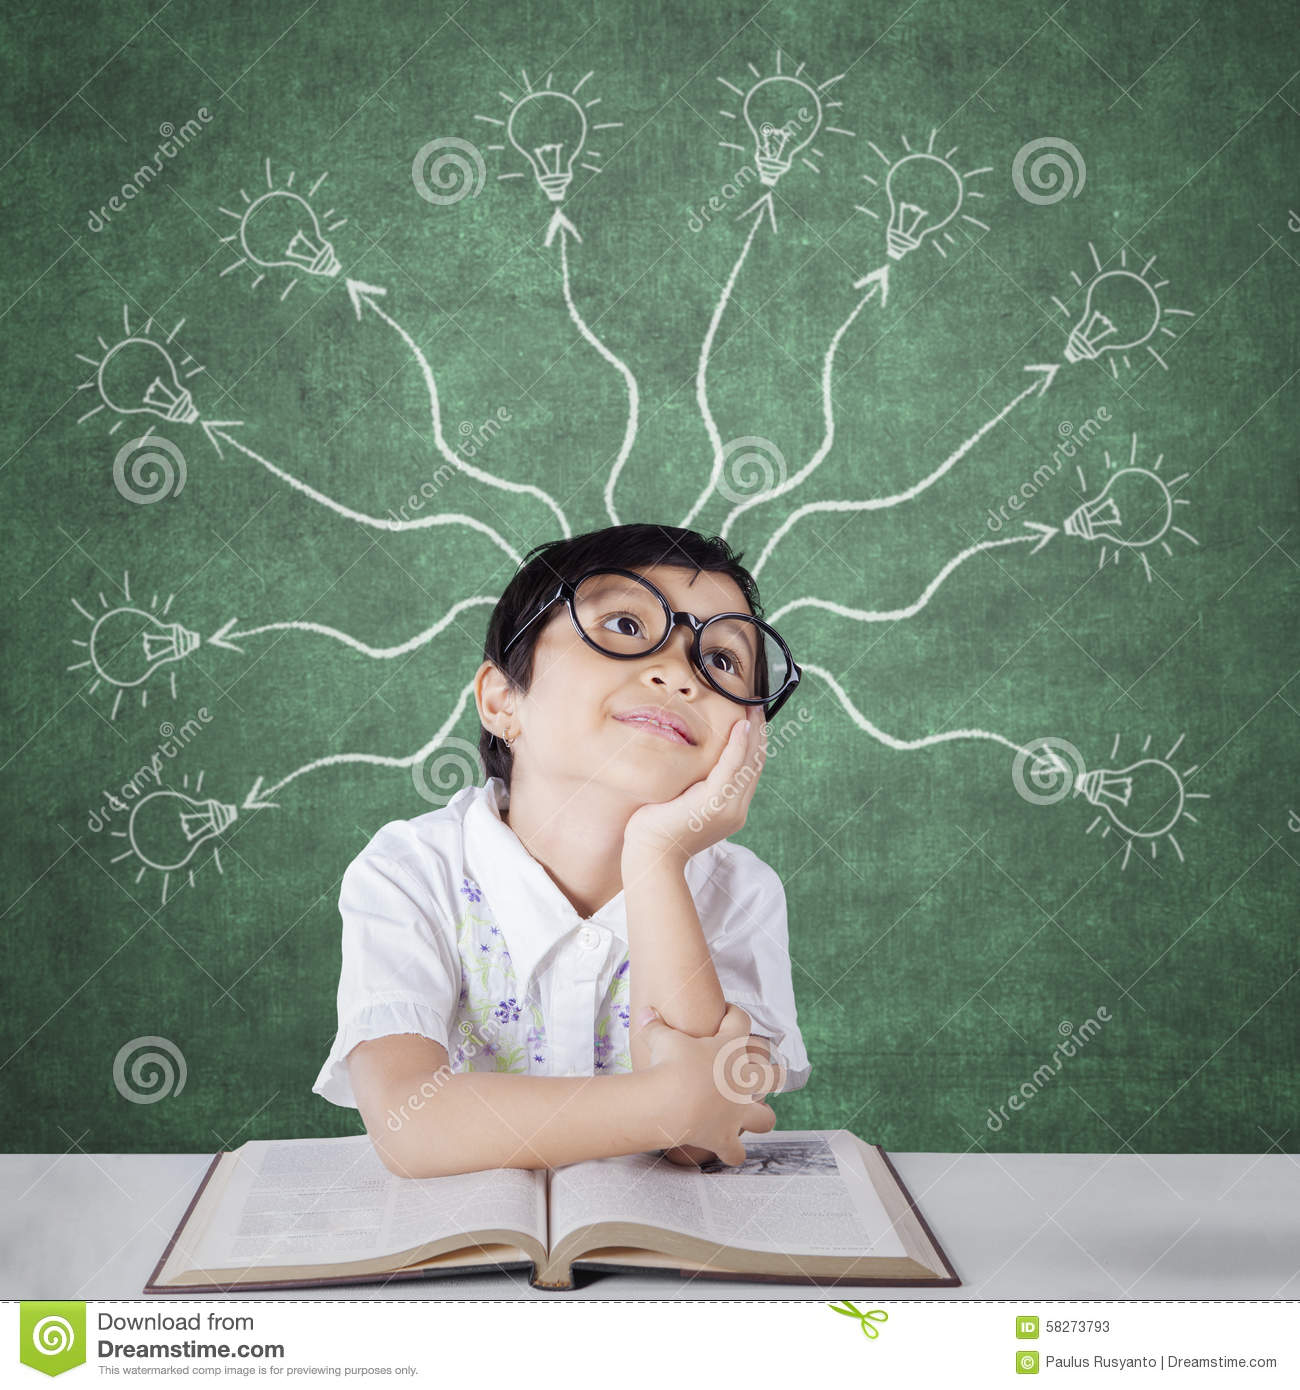 Primary School Student With Branchy Light Bulb Stock Photo ...